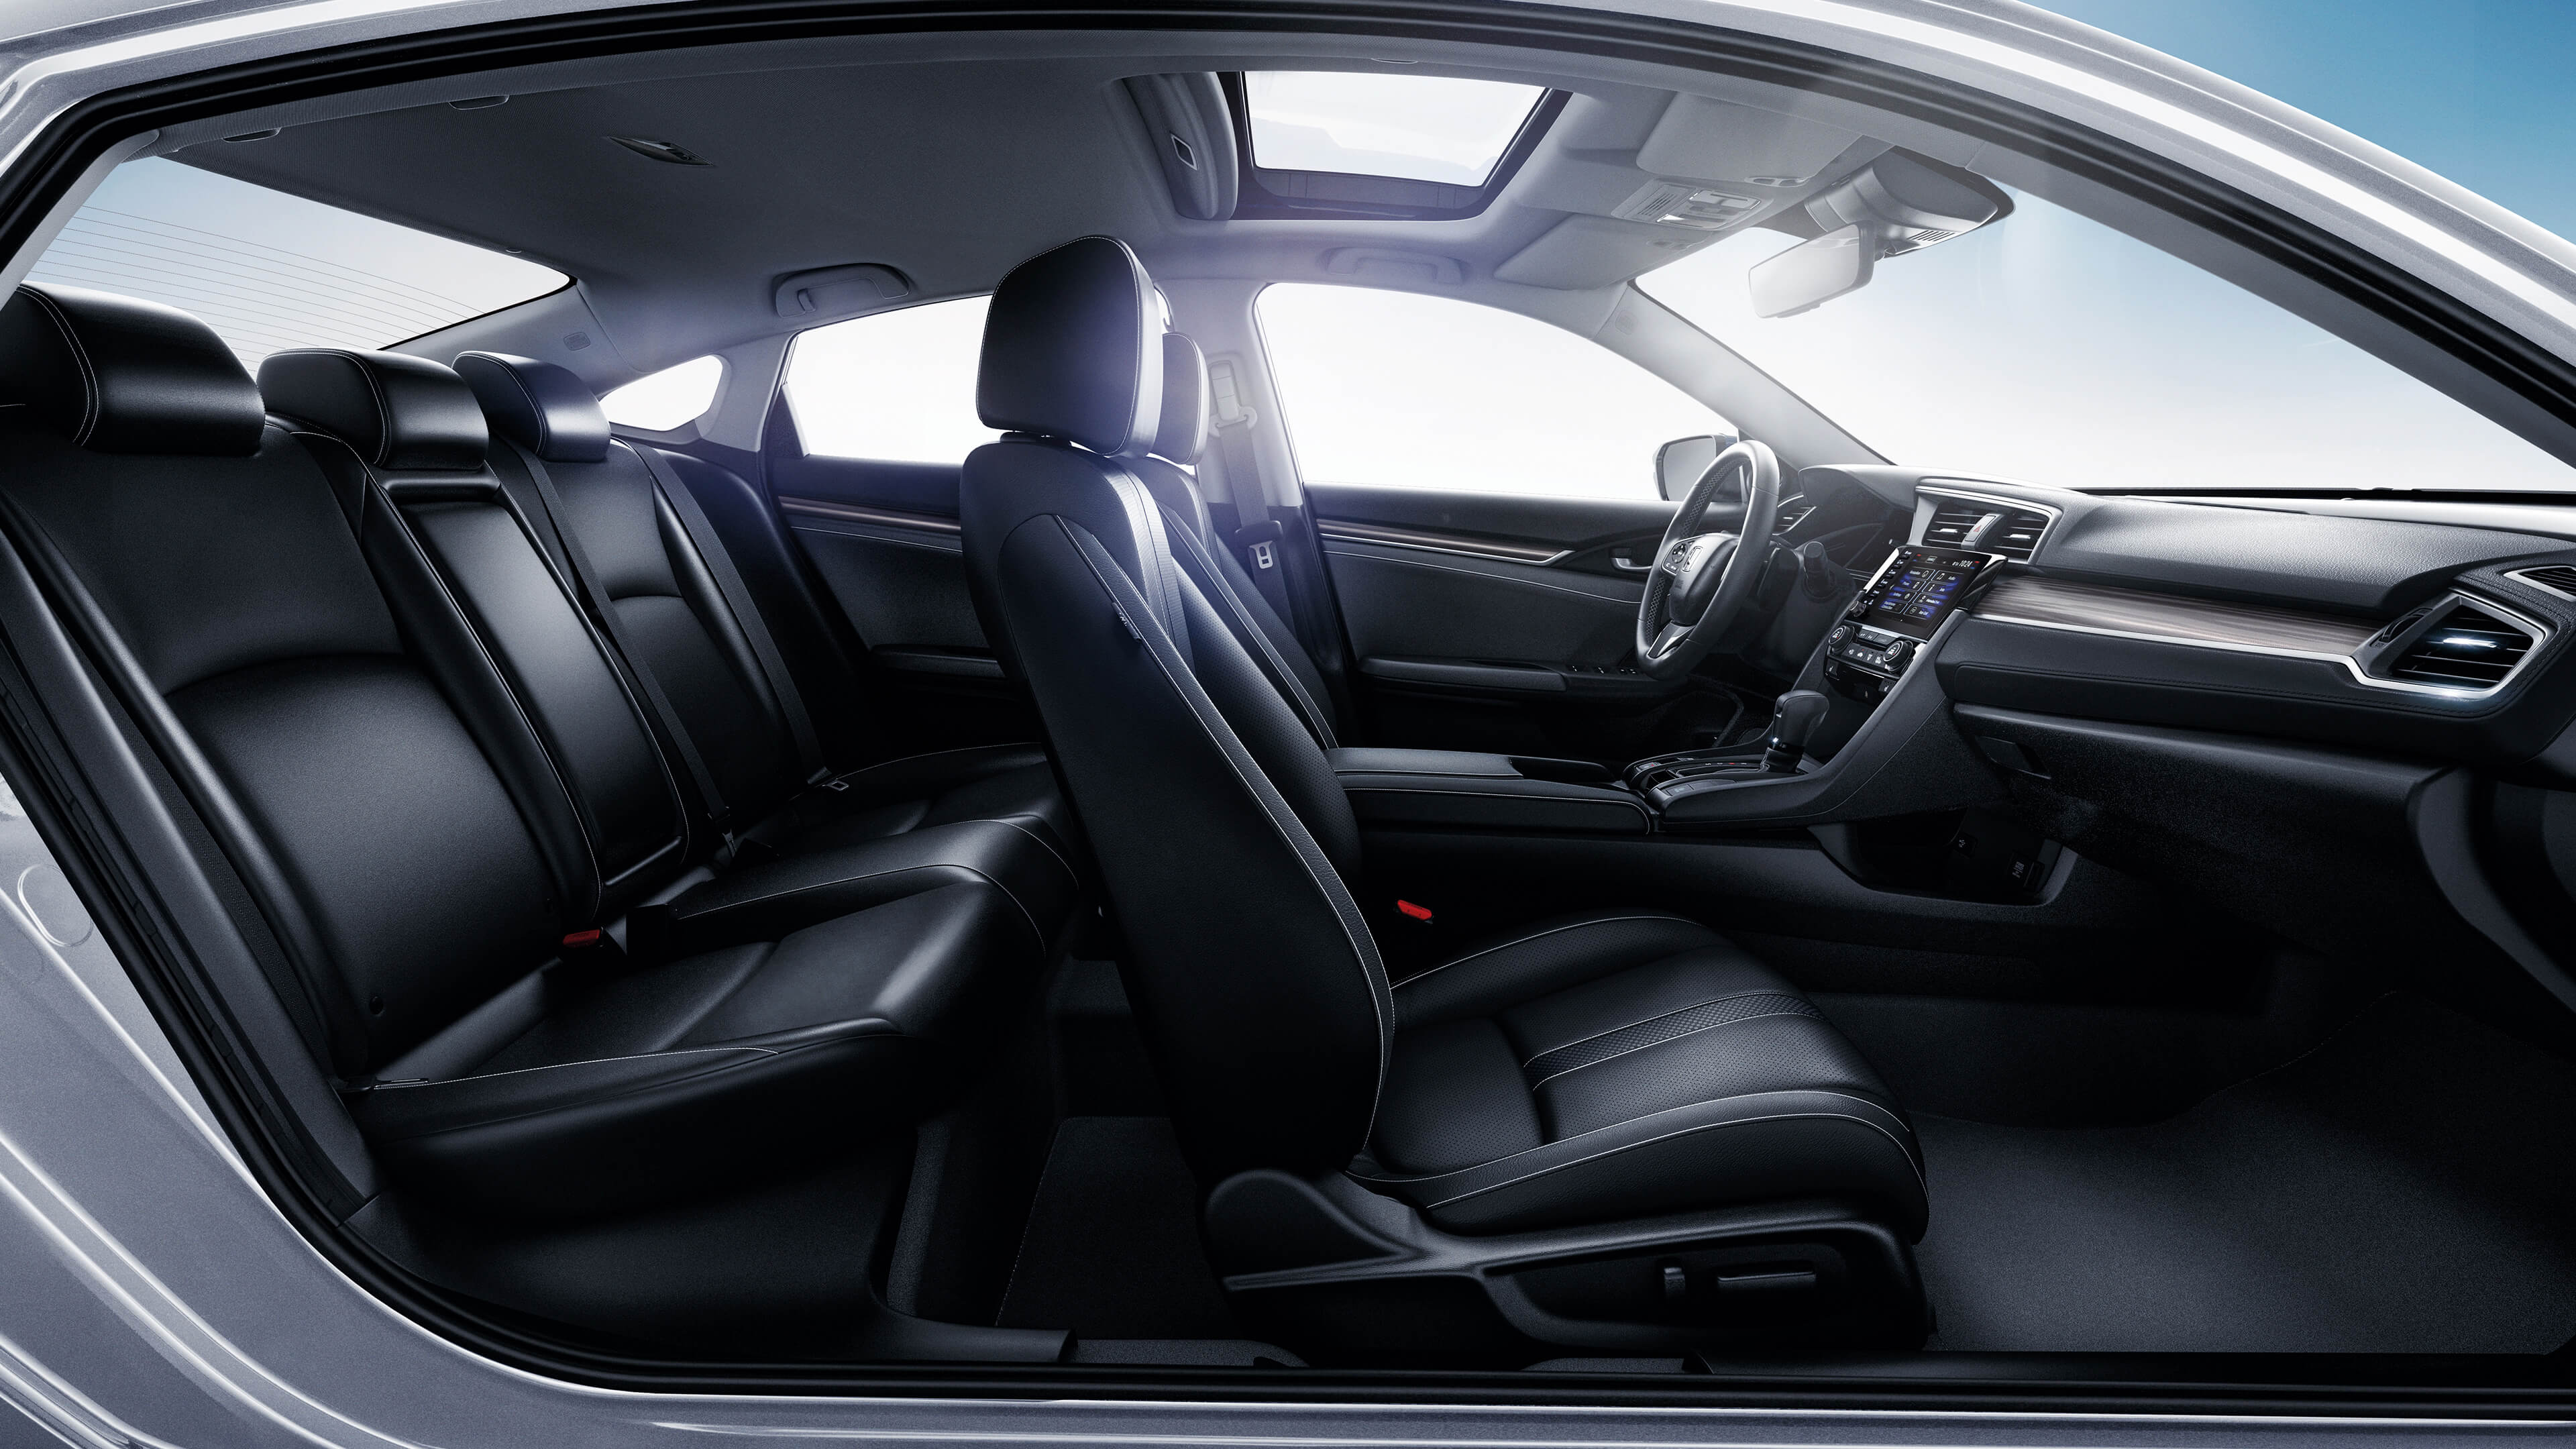 2020 Honda Civic Interior at Richmond Hill Honda in Toronto and the GTA